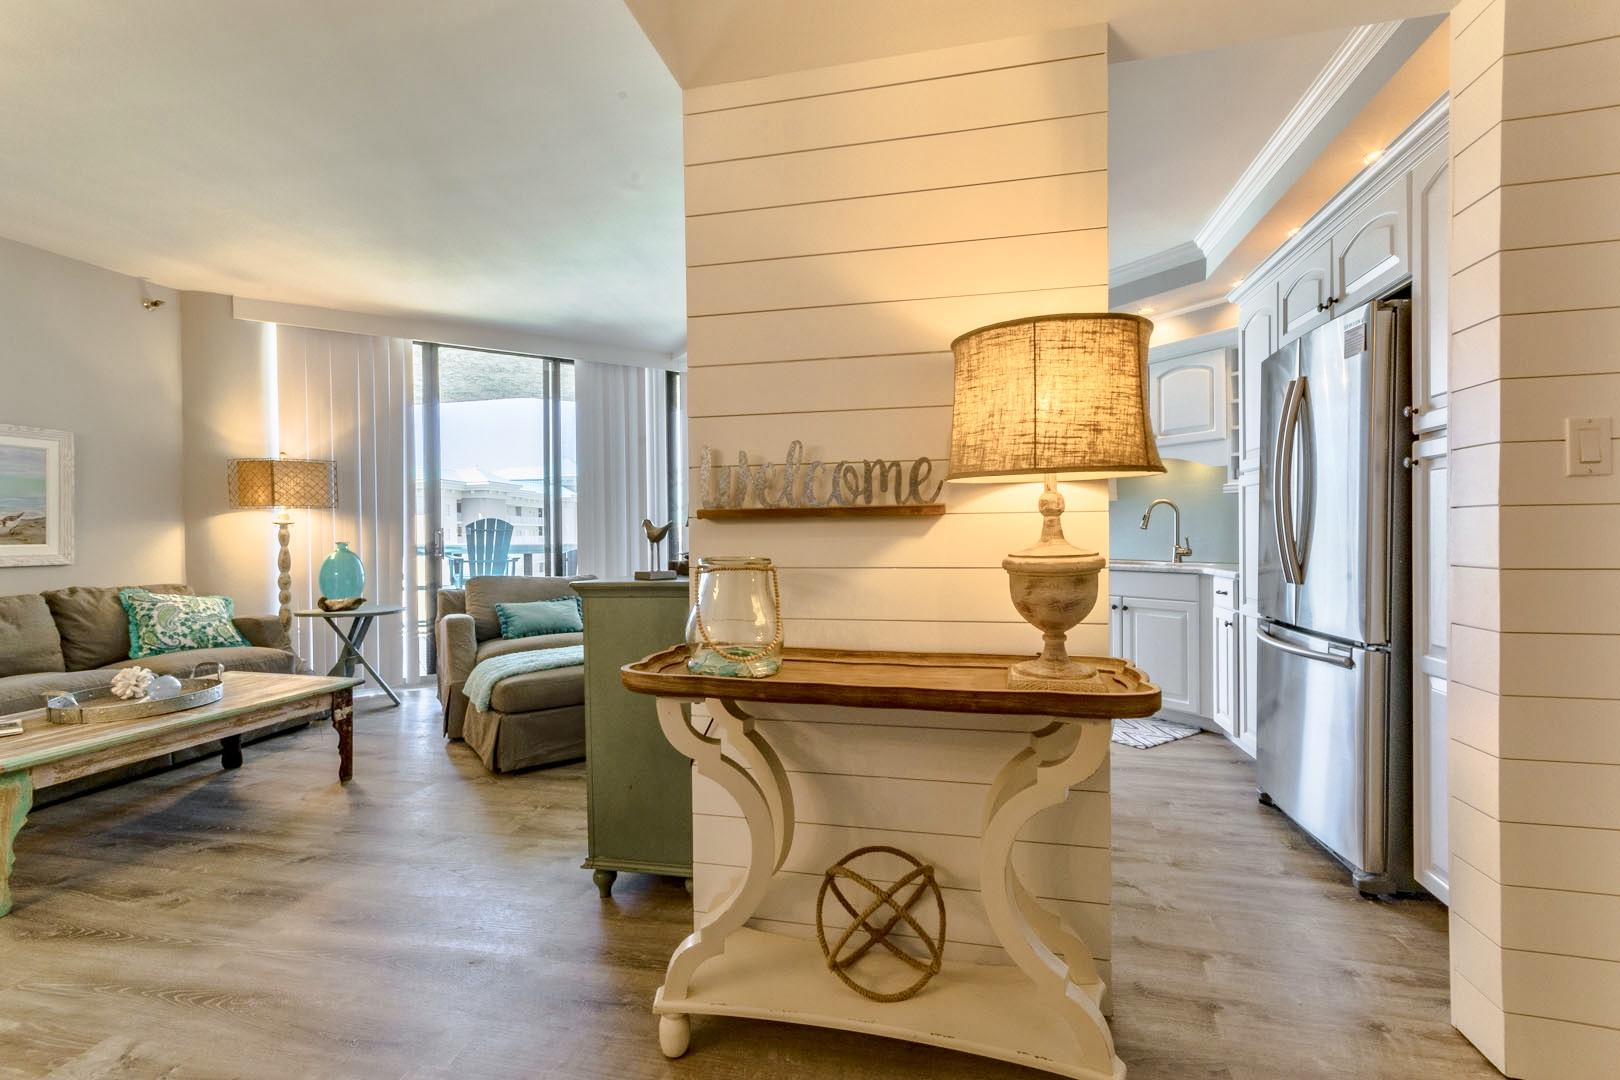 This is a fully renovated, professionally decorated, absolute GEM of a condo in Surfside!  From the moment you step foot into this condo you will immediately sense that no detail has been overlooked.  All new updates include flooring, kitchen/bathroom countertops, kitchen/bathroom cabinetry, tiled baths, paint, shiplap and trim, lighting, appliances, all new furnishings, deck furnishings, linens, decor, and more.  This unit has been professionally decorated and it shows!  A complete list of upgrades are available upon request.  The unit is being offered fully furnished with the exception of 2 dining table chairs. Surfside is located in Miramar Beach on Scenic Highway 98.  Breathtaking views of the white sand beaches and emerald green waters can be enjoyed from the huge outdoor balcony.  And there is a private walkover to the beach from the Surfside pool deck area.  Surfside has a tremendous reputation and a track record for retaining repeat guests.  Because this unit has a lockout bedroom this can be rented as a 3 bedroom, 2 bedroom, or 1 bedroom which allows you to maximize rental income potential.  This unit had gross rental income of over $47,000 in 2018 and with bookings of over $41,000 already for 2019 it is on pace to surpass that number this year.  Surfside amenities also include the Royal Palm Grille restaurant, covered parking garages (one for owners and one for guests), large pool deck with heated pool, sauna, fitness center, lighted tennis courts, basketball, shuffle board, pool side Tiki Hut/beach bar, and spa and hair/nail/facial salon.  The Silver Sands outlet malls, and many restaurant options are just a few minutes away.  If you are looking for a completely turnkey condo right in the heart of it all in popular Miramar Beach, look no further!  Please call today!